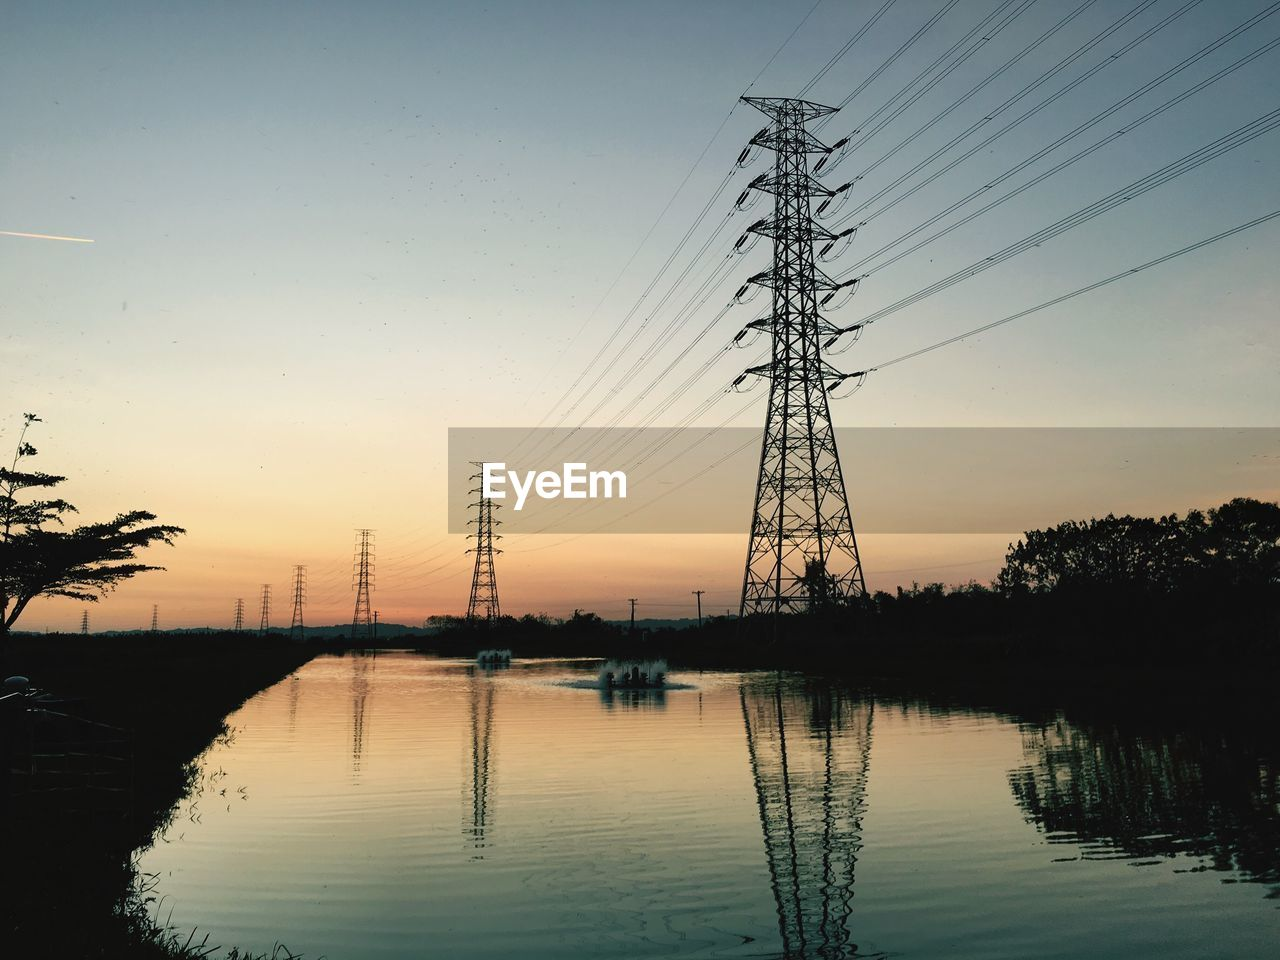 sunset, electricity pylon, cable, connection, sky, no people, silhouette, power line, reflection, water, tree, electricity, fuel and power generation, outdoors, nature, scenics, beauty in nature, clear sky, day